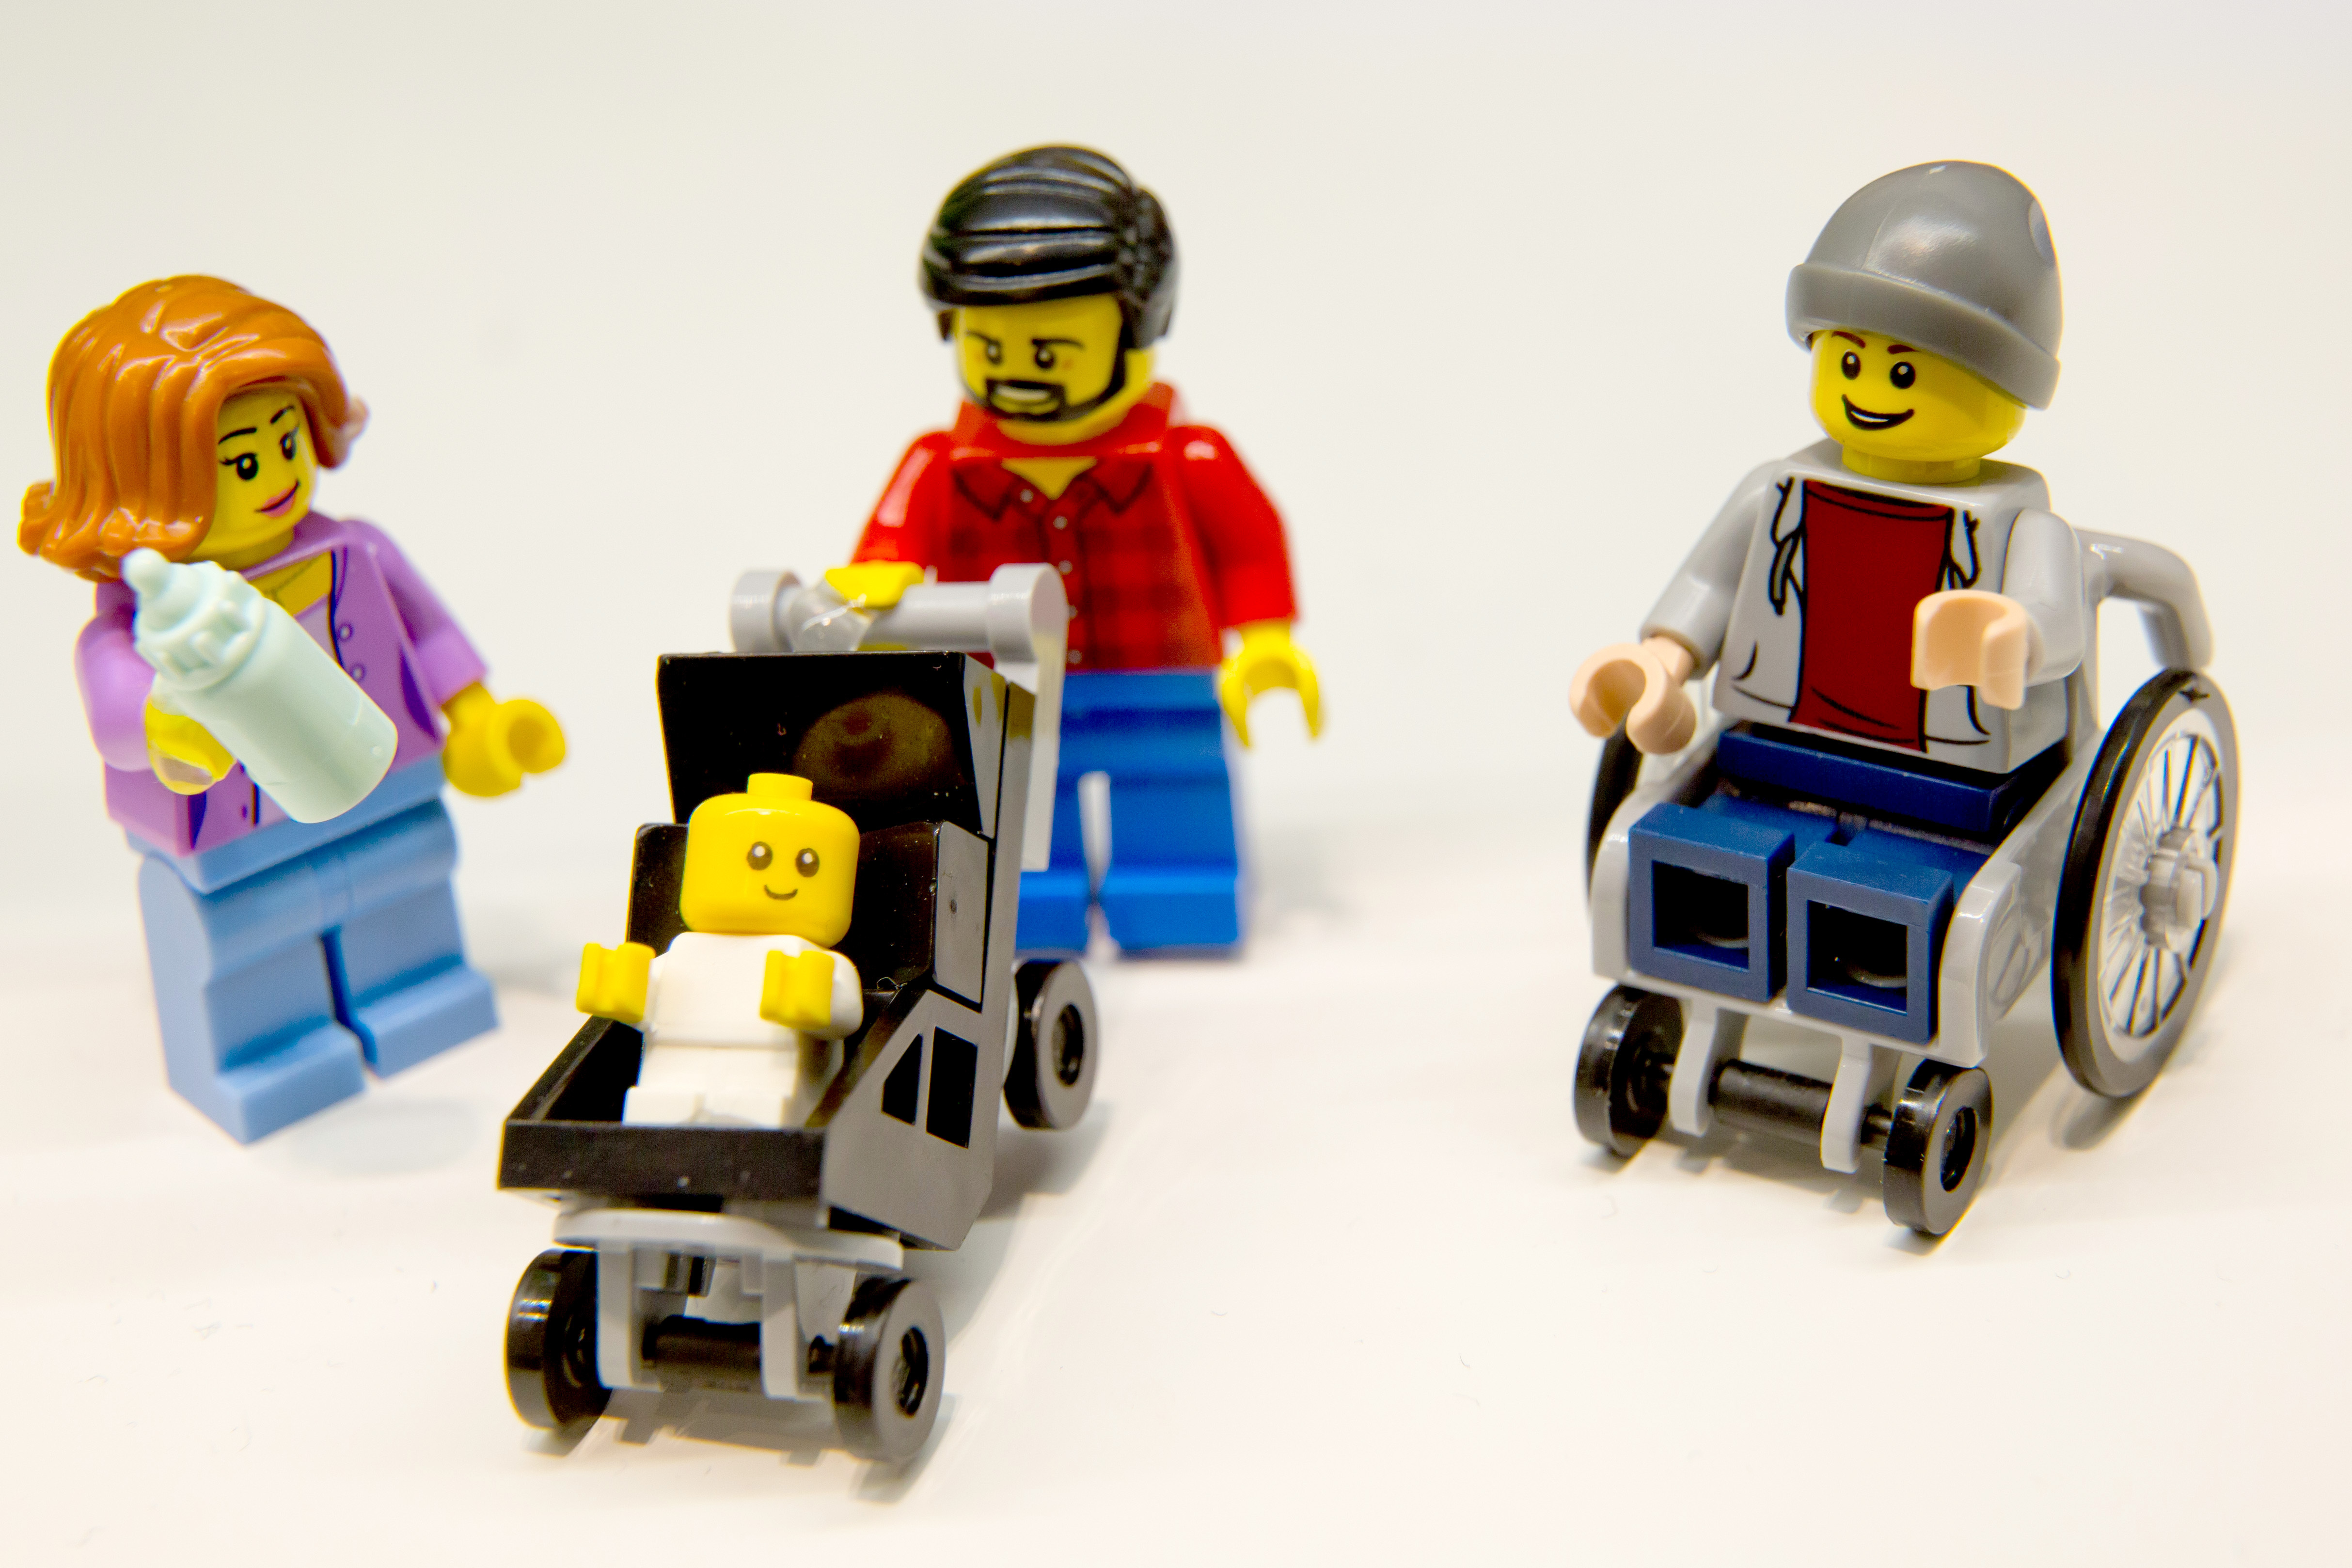 Lego figurines, including one in a wheelchair are pictured at the Lego booth on January 28, 2016 in Nuernberg during the 67th International Toy Fair.